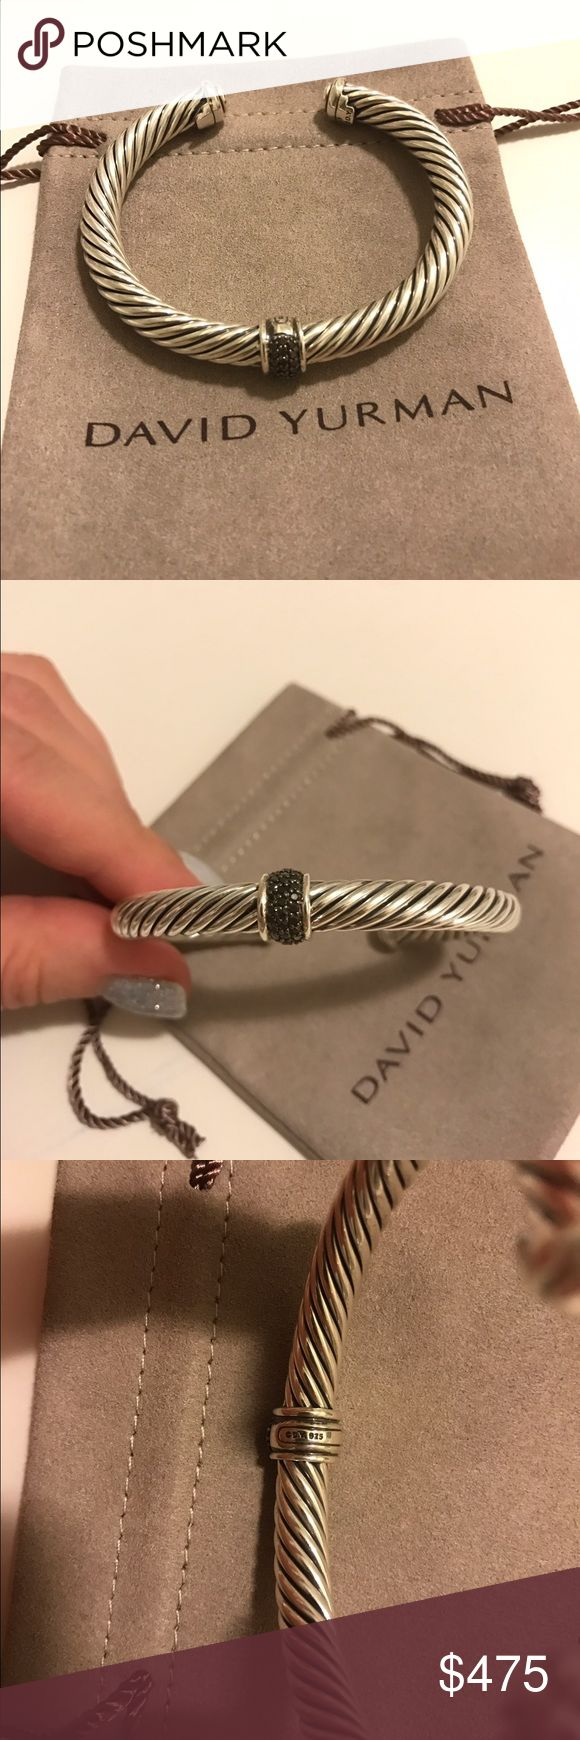 """David Yurman 7mm Black Diamond Bracelet Excellent Like New Pre-Owned Condition Authentic DAVID YURMAN  David Yurman Cable Classics with Black Diamonds, 7mm  Size: Medium   Retail $695 Sterling silver and 0.22 total carat weight Pave Black Diamonds 7mm wide  Comes with David Yurman Pouch  Hallmarked """"D.YURMAN"""",""""925""""  Please look at all pictures for details as this is the actual bracelet you are buying. David Yurman Jewelry Bracelets"""